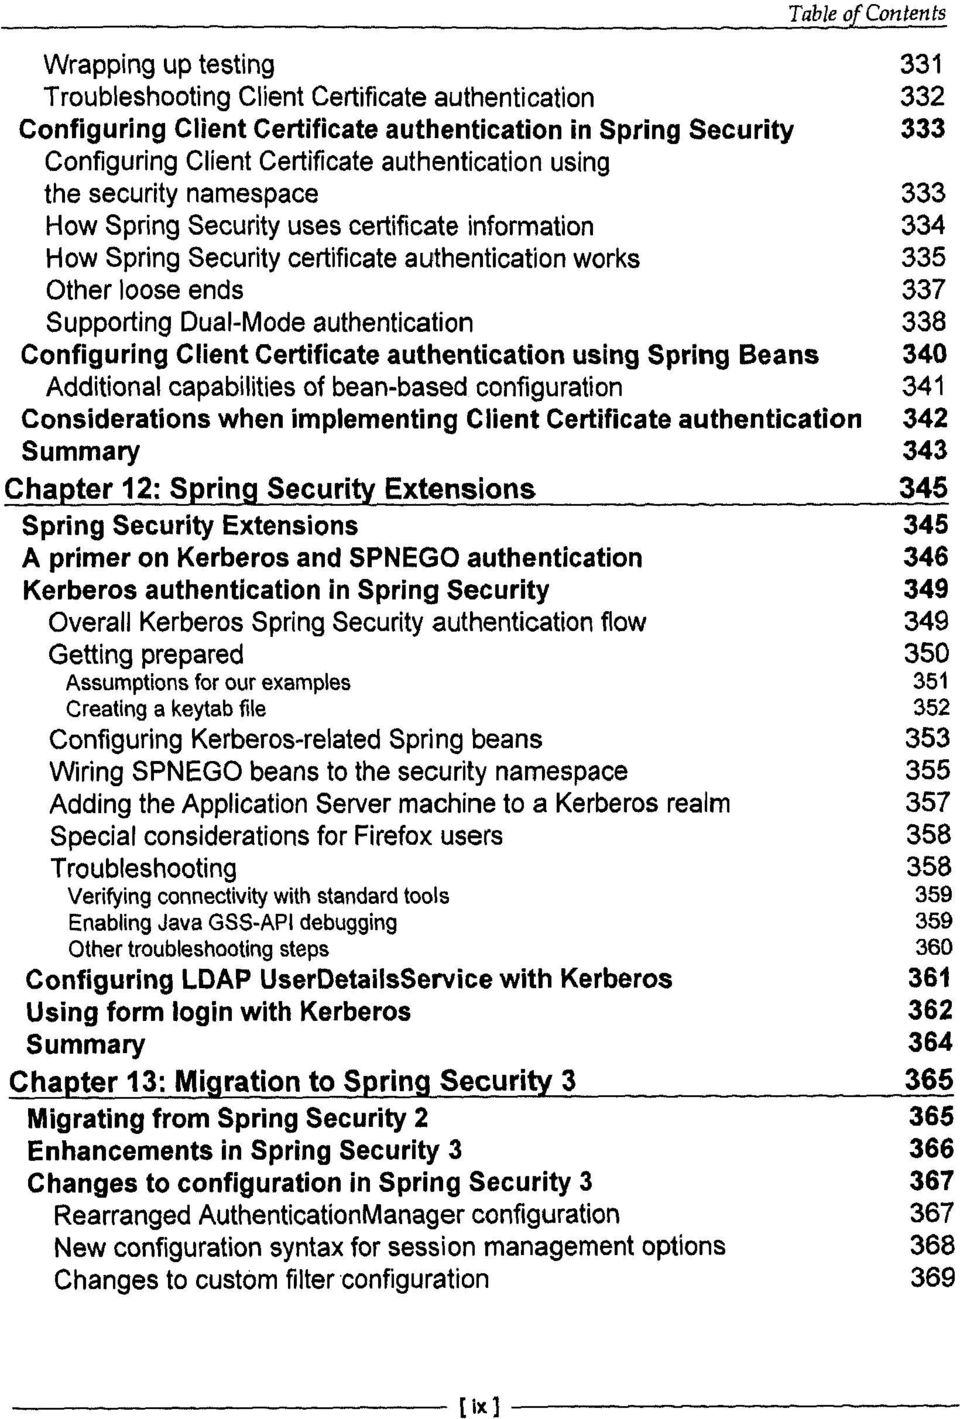 Configuring Client Certificate authentication using Spring Beans 340 Additional capabilities of bean-based configuration 341 Considerations when implementing Client Certificate authentication 342